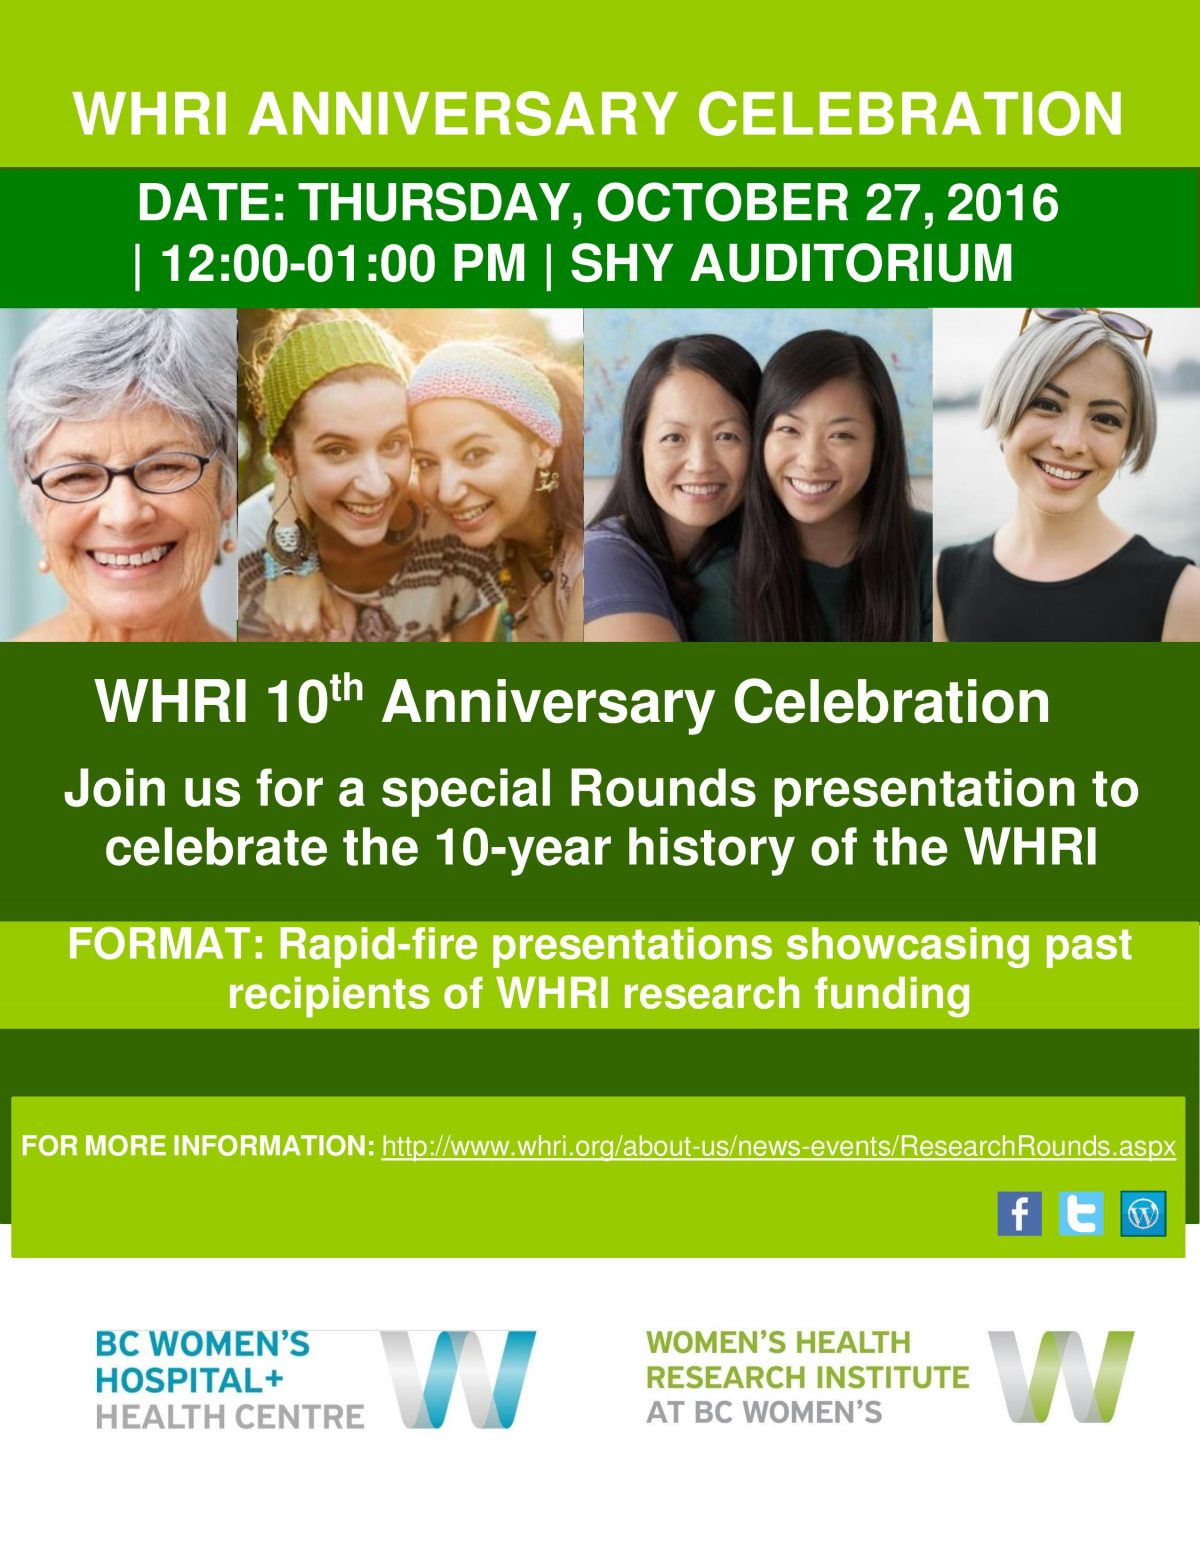 whri-10th-anniversary-event_event-poster-2-page-001